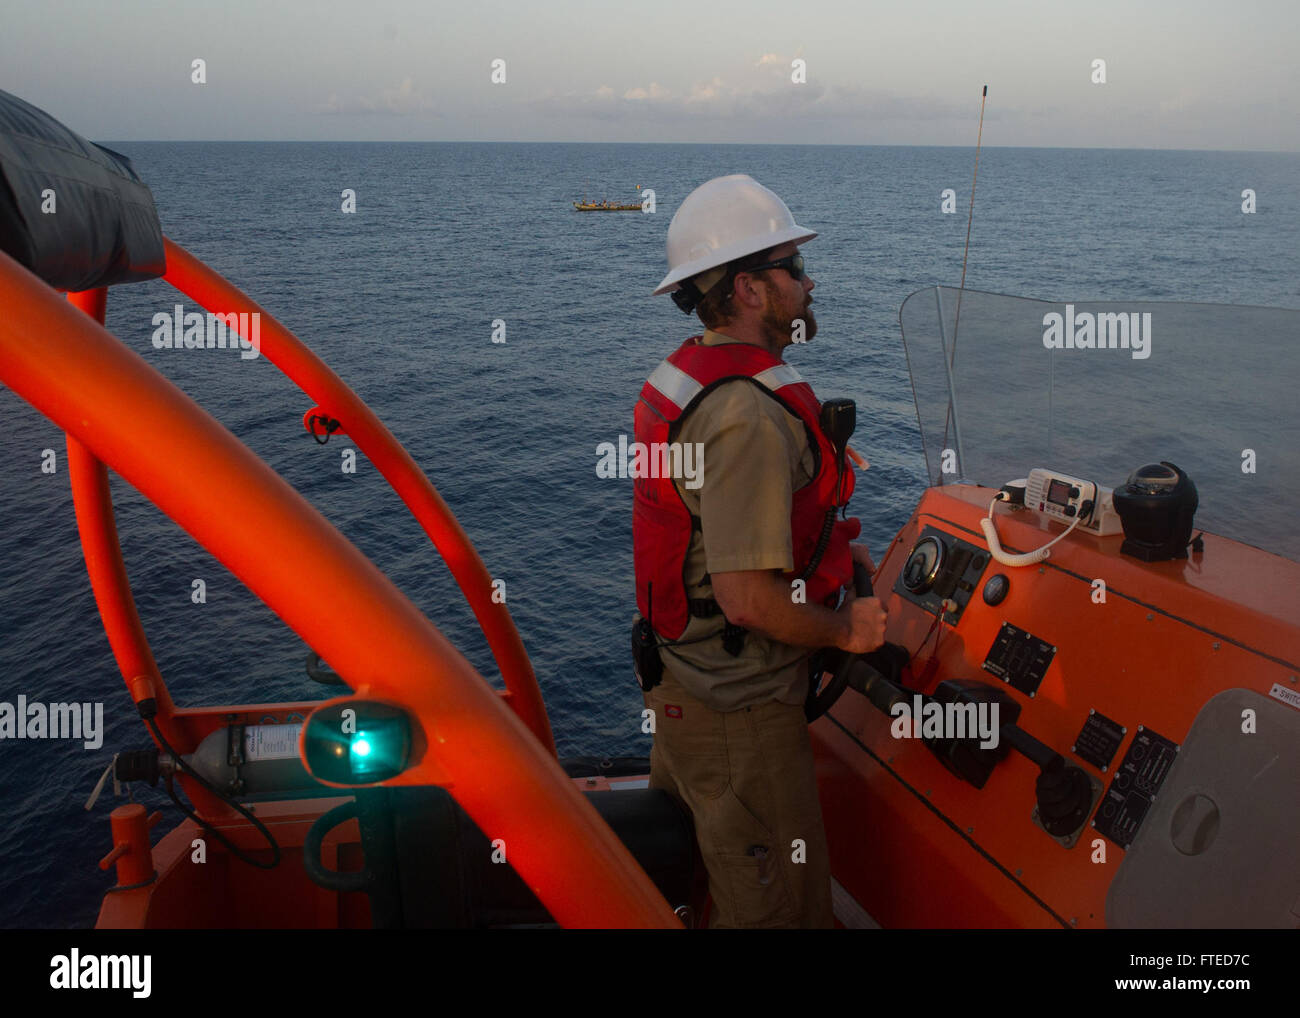 140408-N-ZY039-038  GULF OF GUINEA (April 8, 2014) - James Regan, chief mate aboard joint, high-speed vessel USNS - Stock Image